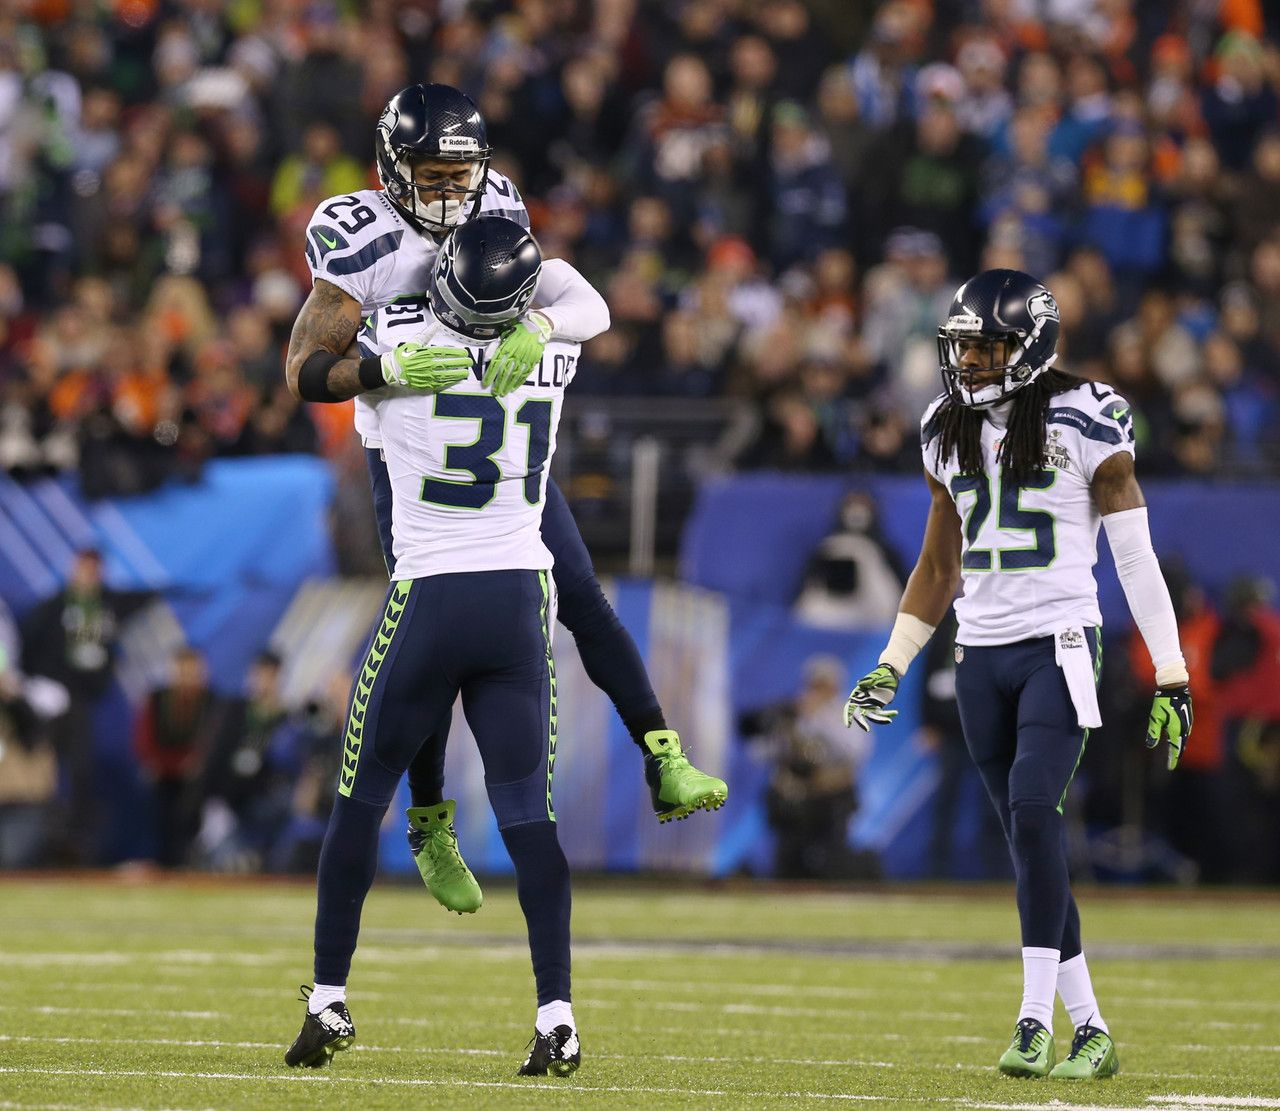 Seattle Seahawks strong safety Kam Chancellor (31